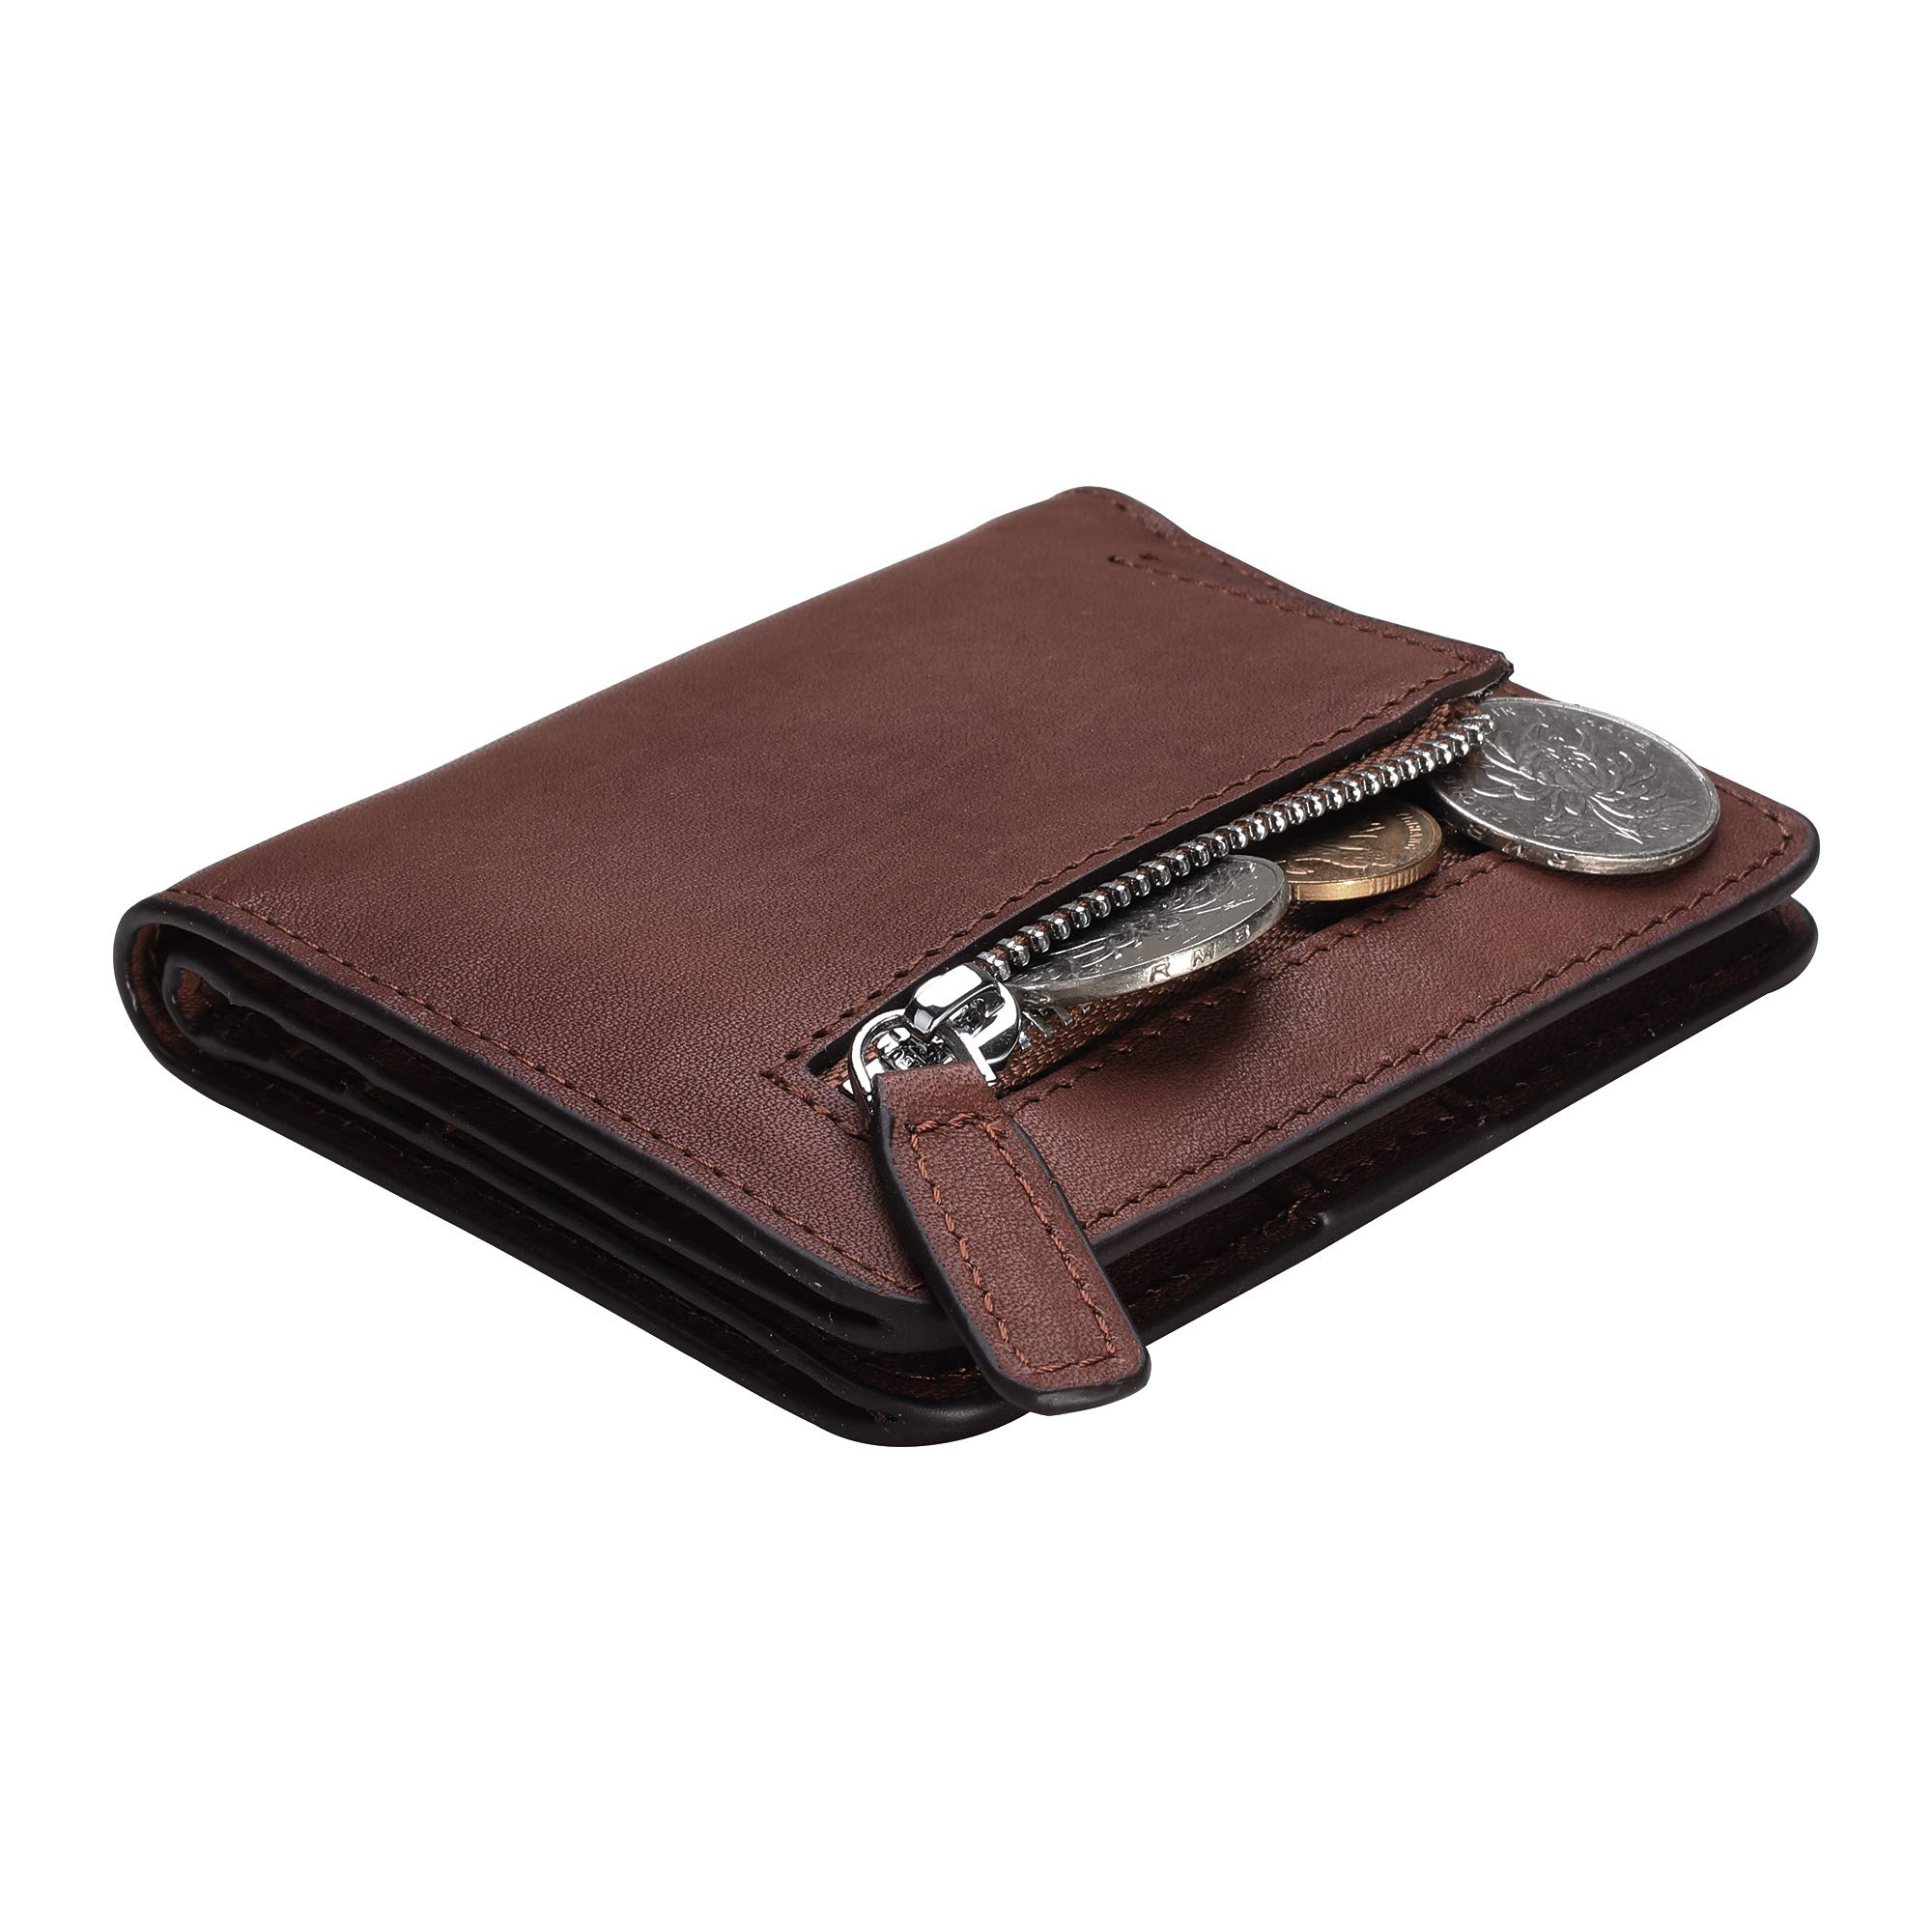 BIG SALE-AINIMOER Women's RFID Blocking Leather Small Compact Bifold Pocket Wallet Ladies Mini Purse with id Window (Vintage Brown) by AINIMOER (Image #6)